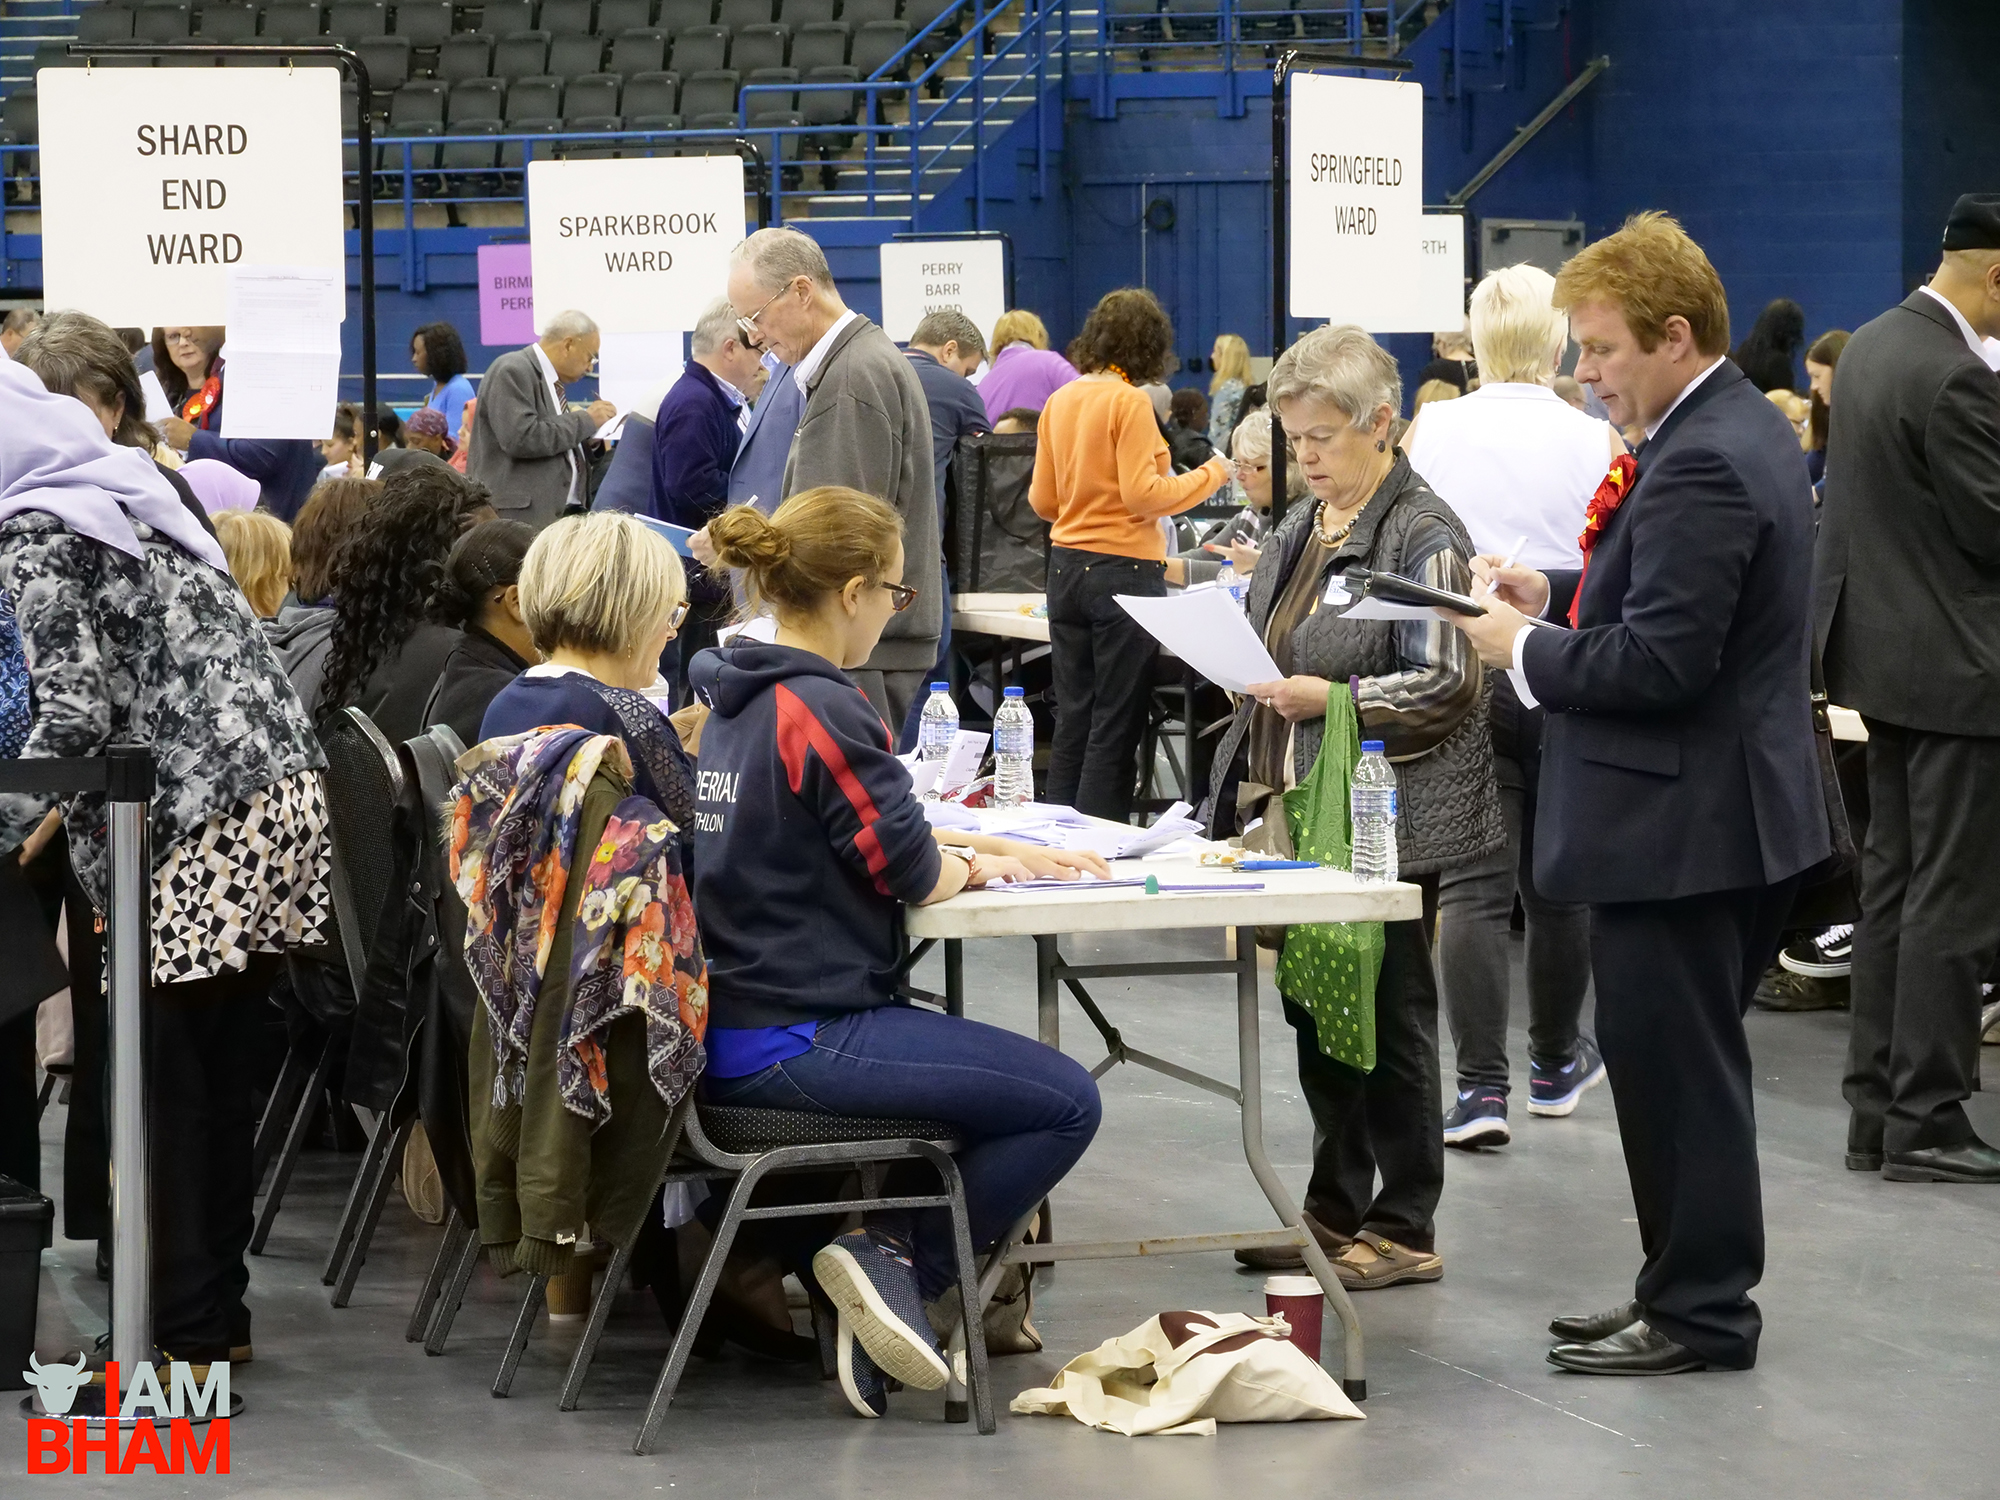 Political party members observe the official West Midlands Mayoral Election vote count at the Birmingham Barclaycard Arena